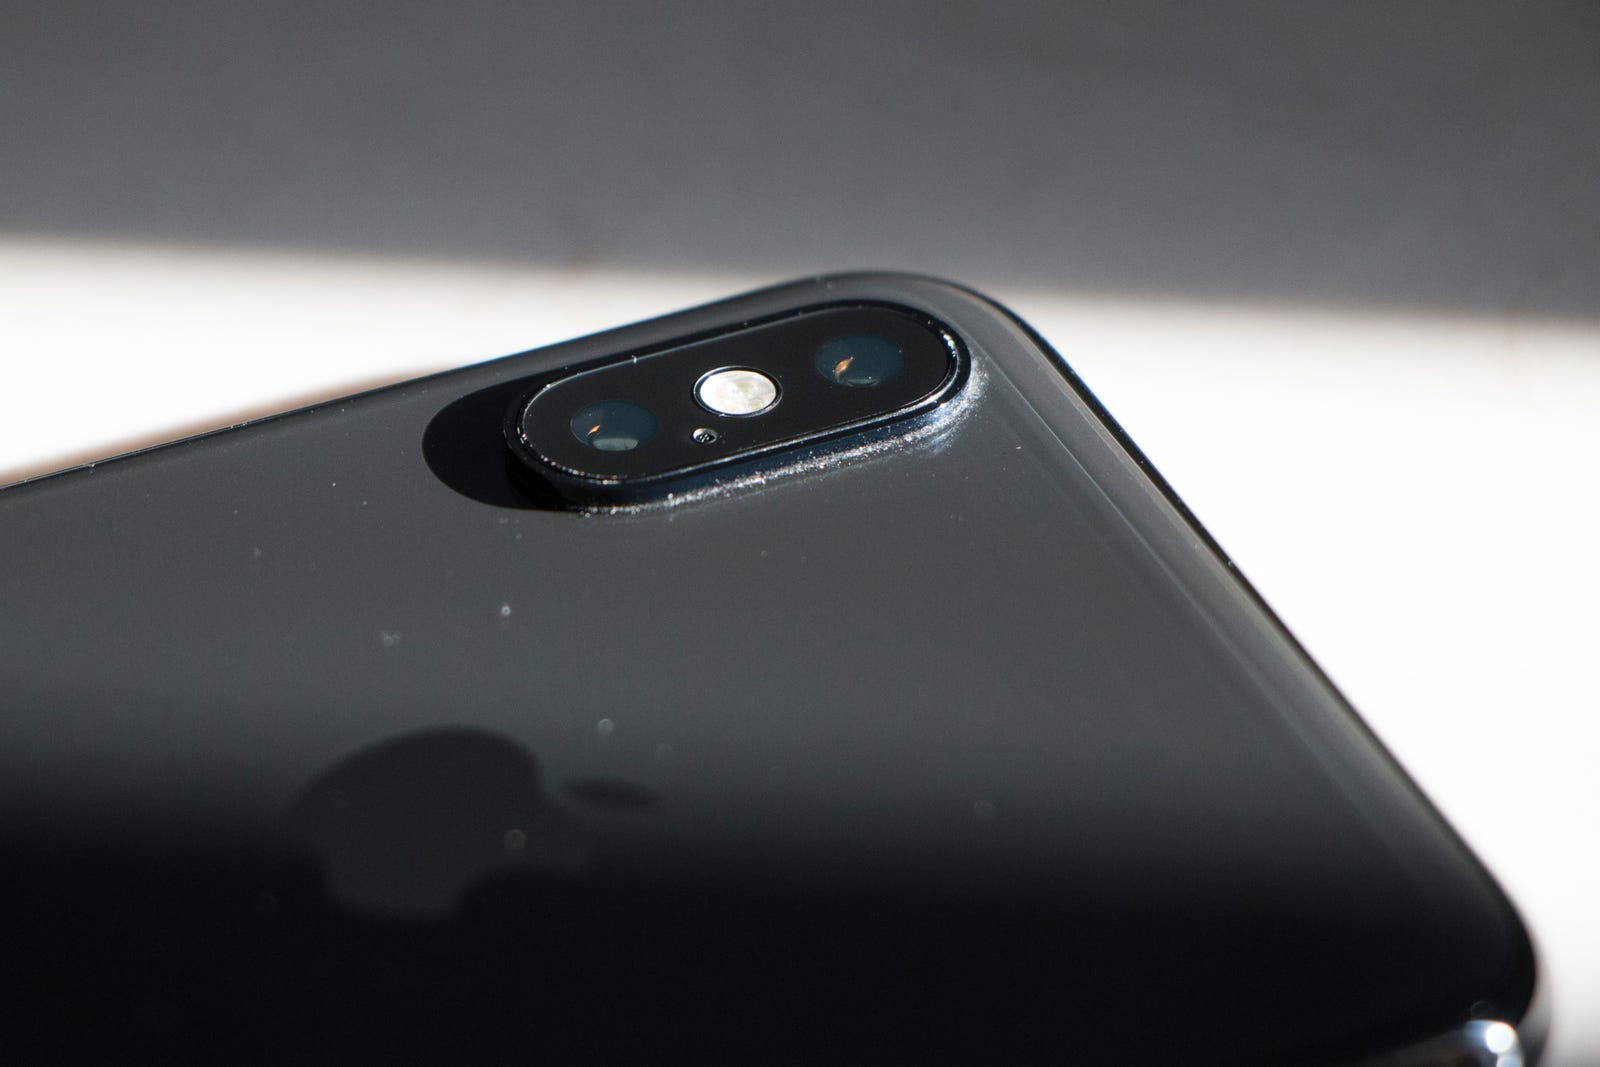 The phone's dual-lens camera is still in perfect condition.